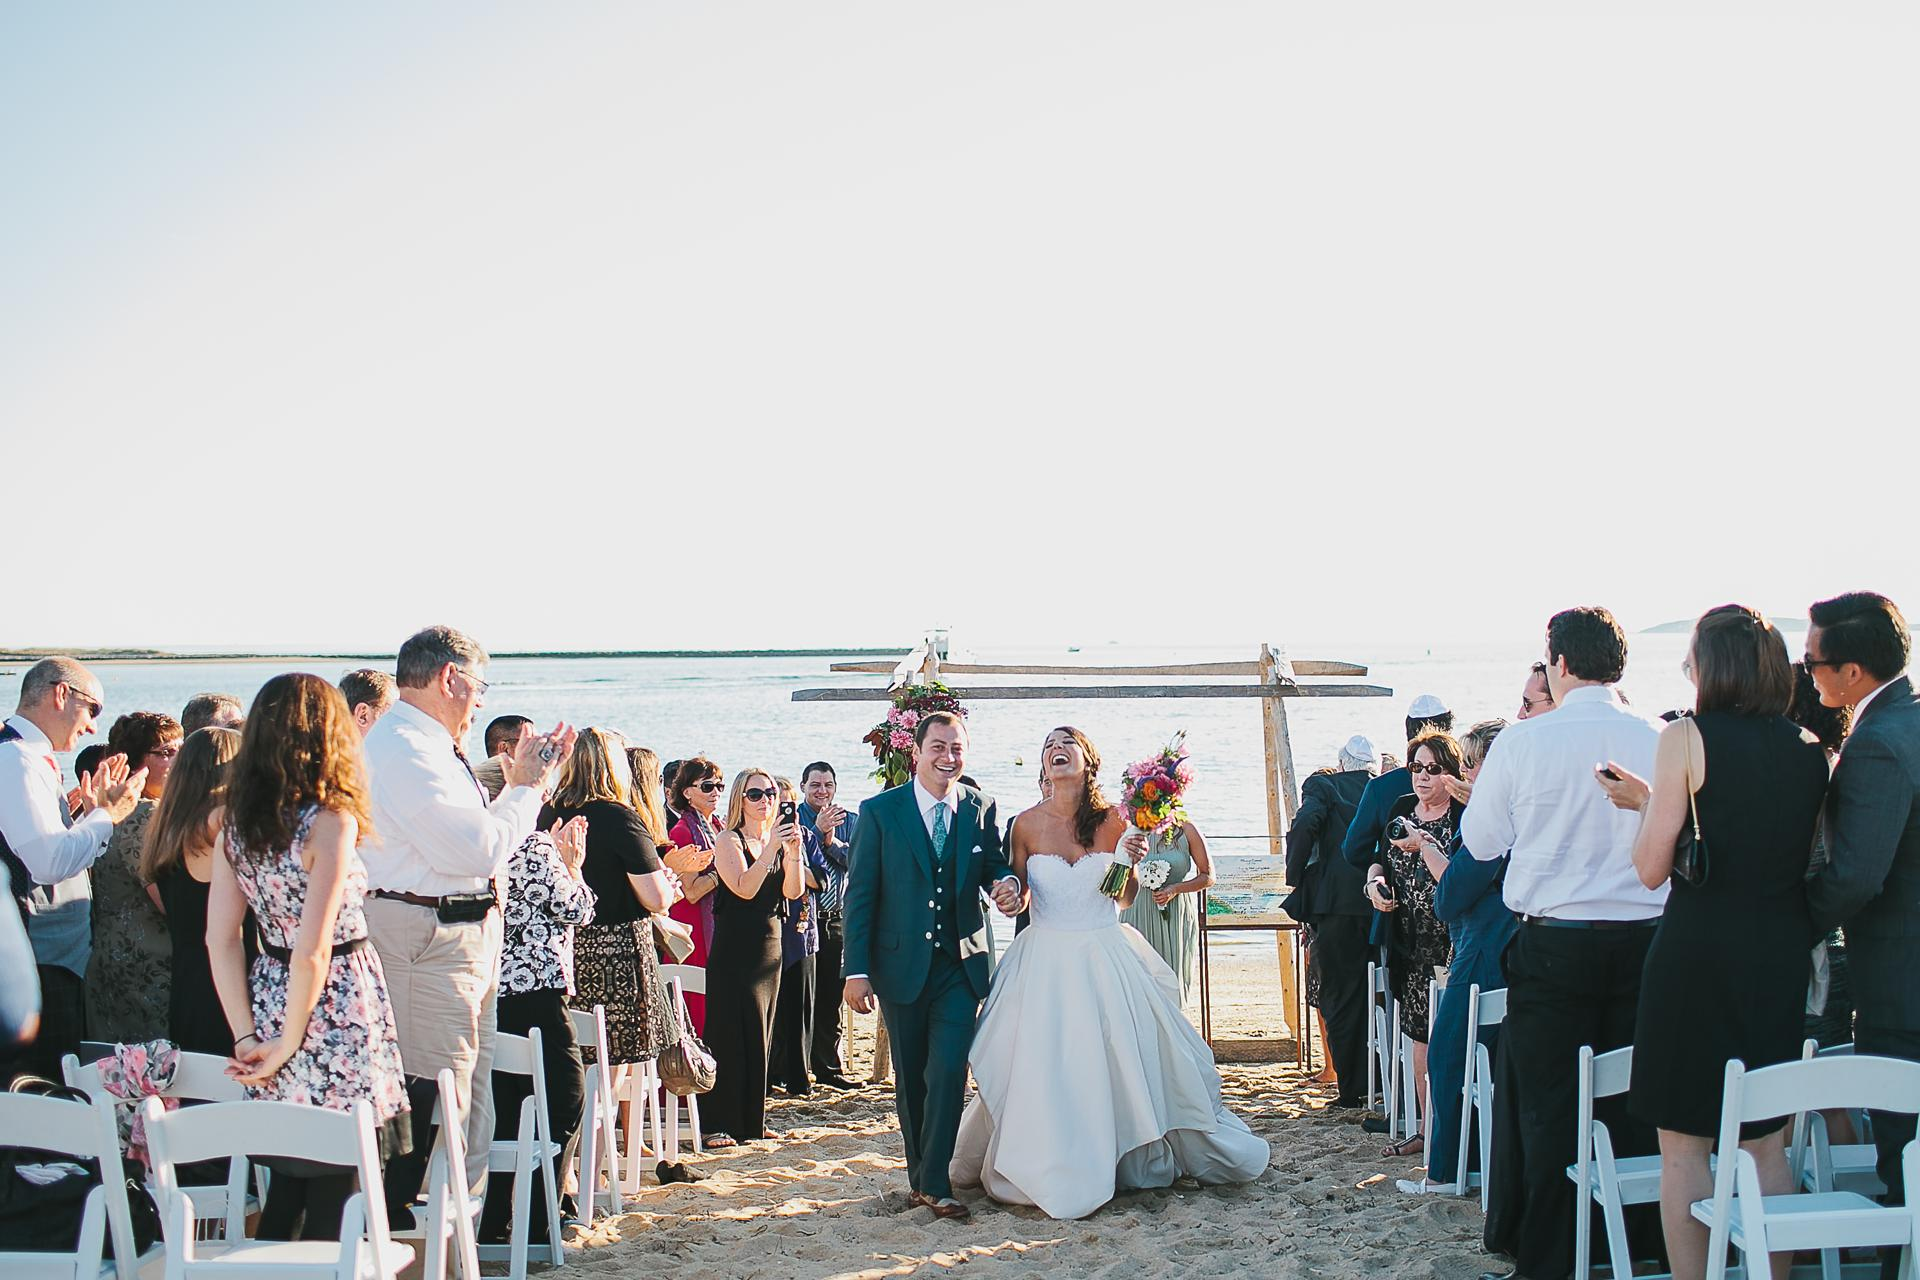 In their shoe-optional beach ceremony, the couple exchanged vows under a chuppah made of old fence posts. Wellfleet.